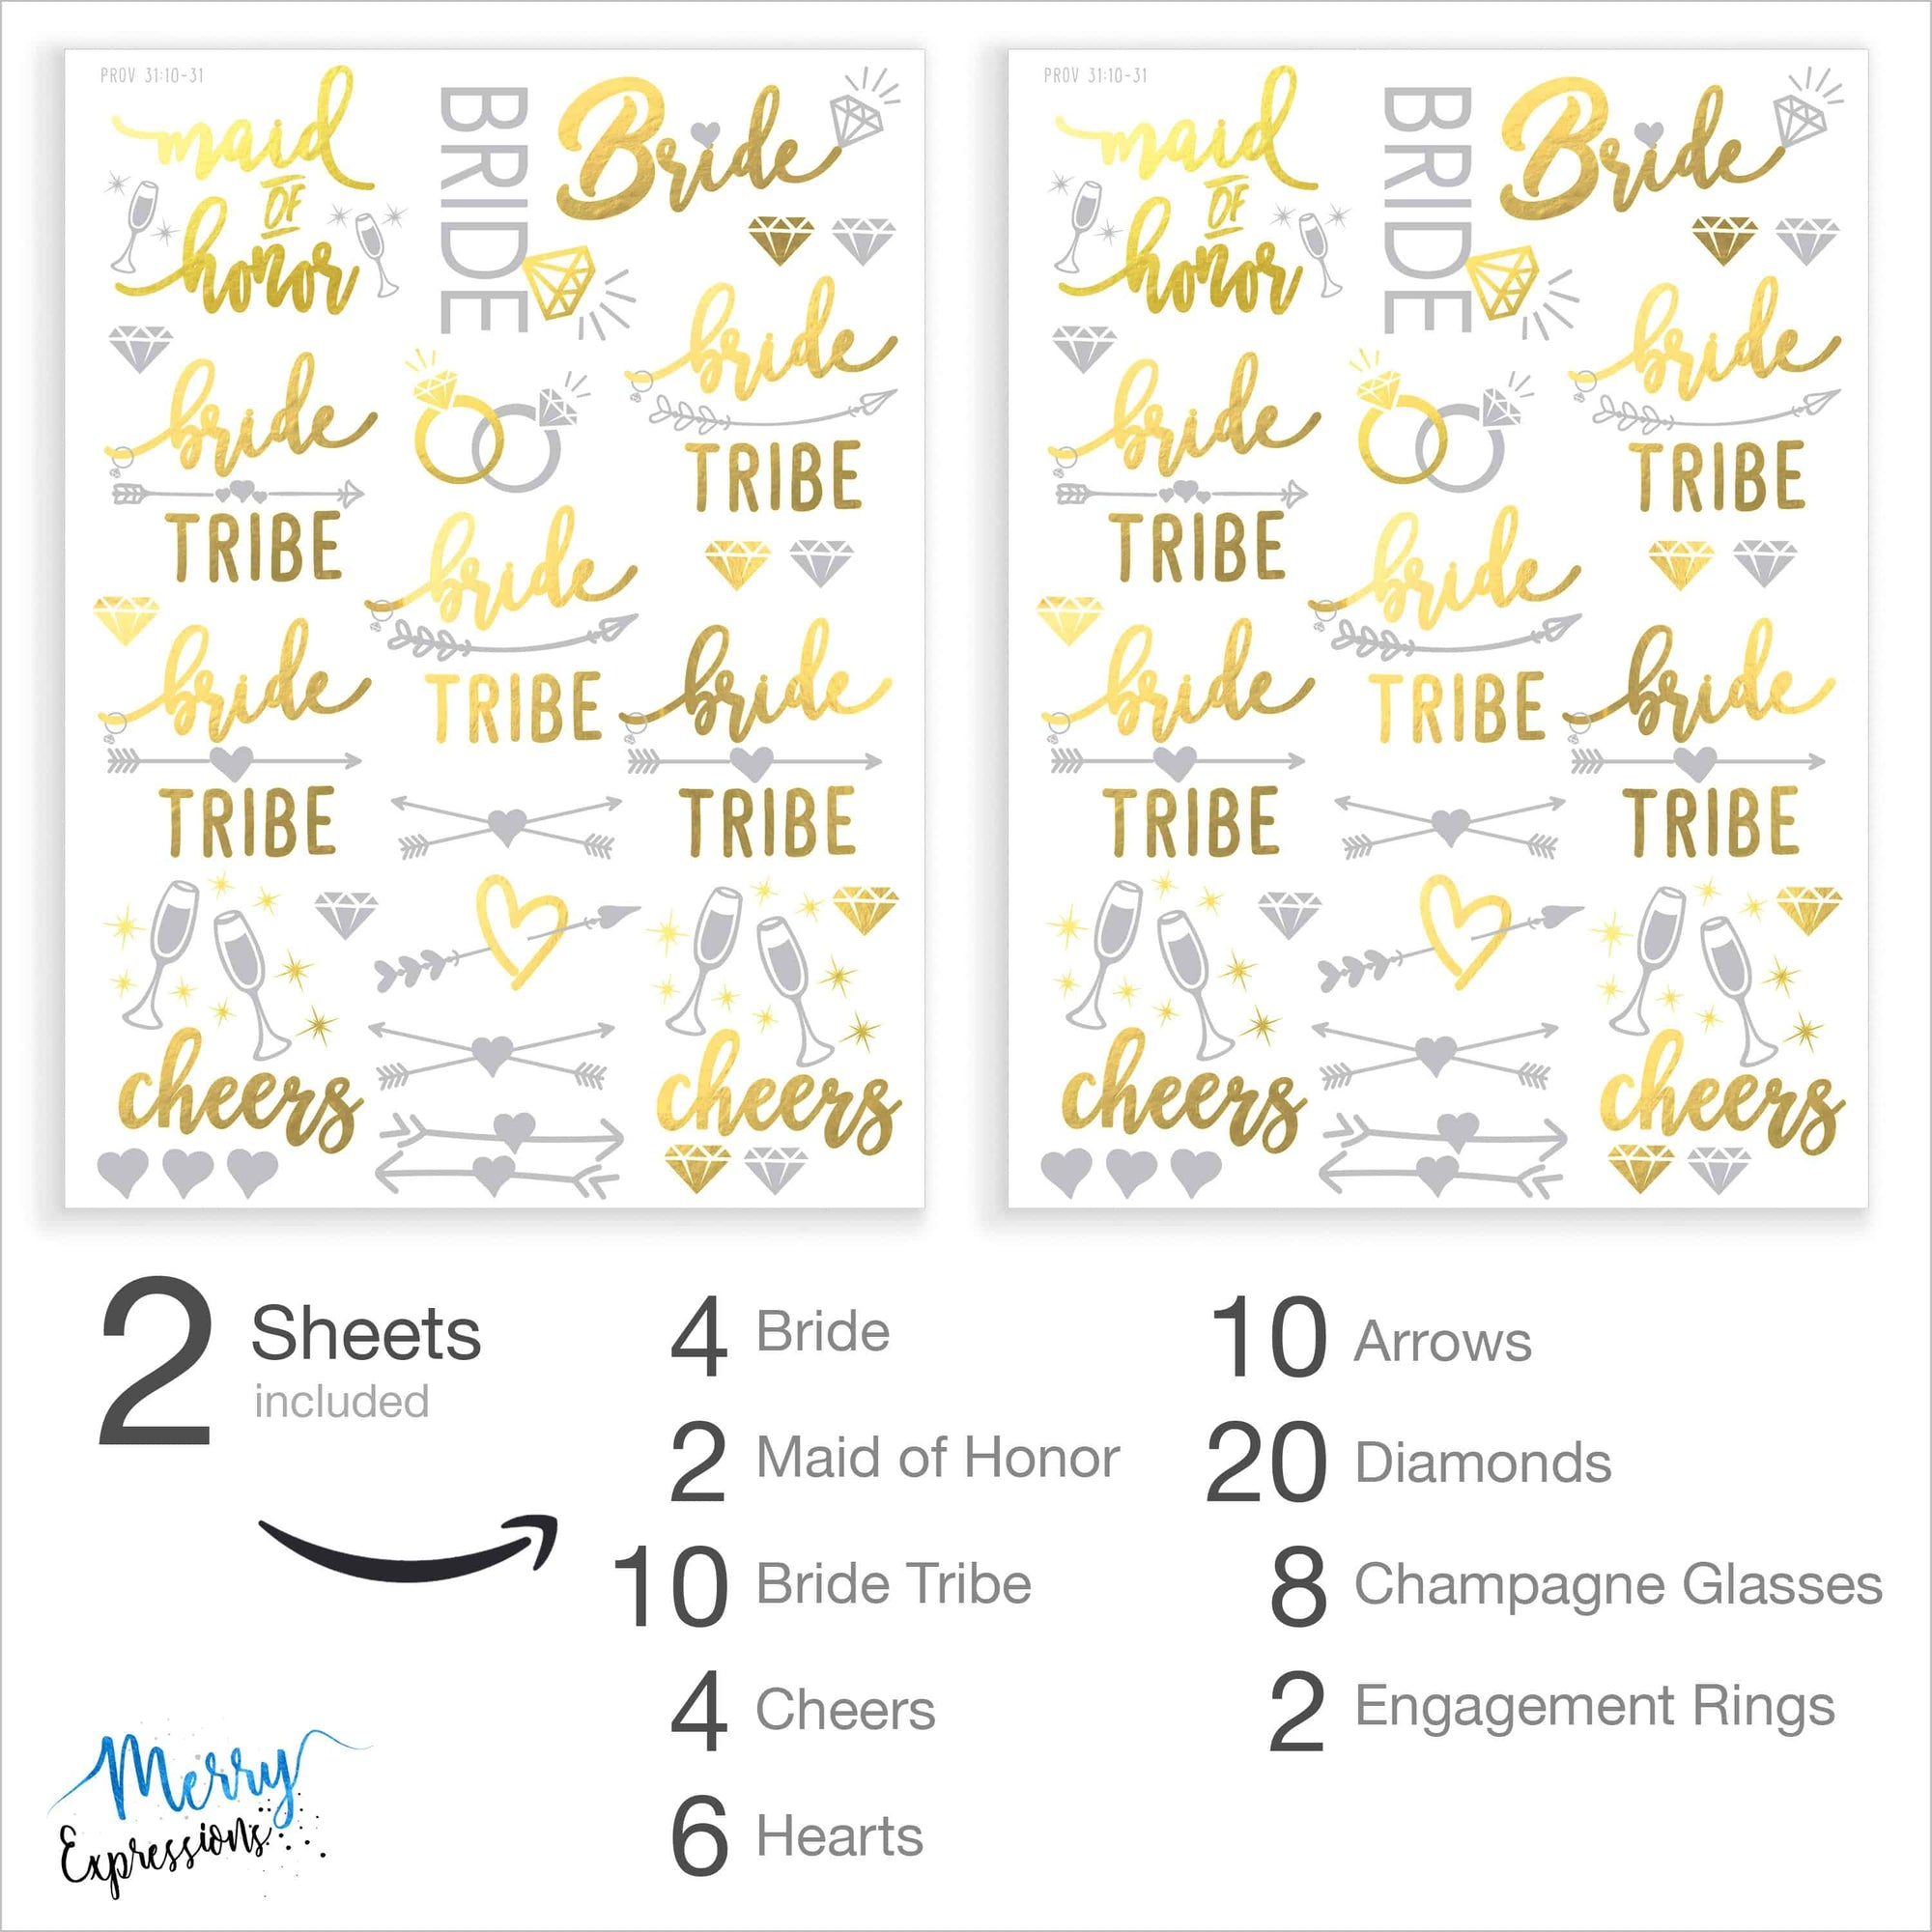 Bachelorette Party Flash Tattoos - 120+ Metallic Gold & Silver Sweat & Water Resistant Tats - Bachelorette Party Decorations For Bridesmaids, Maid Of Honor & Bride Tribe - Merry Expressions